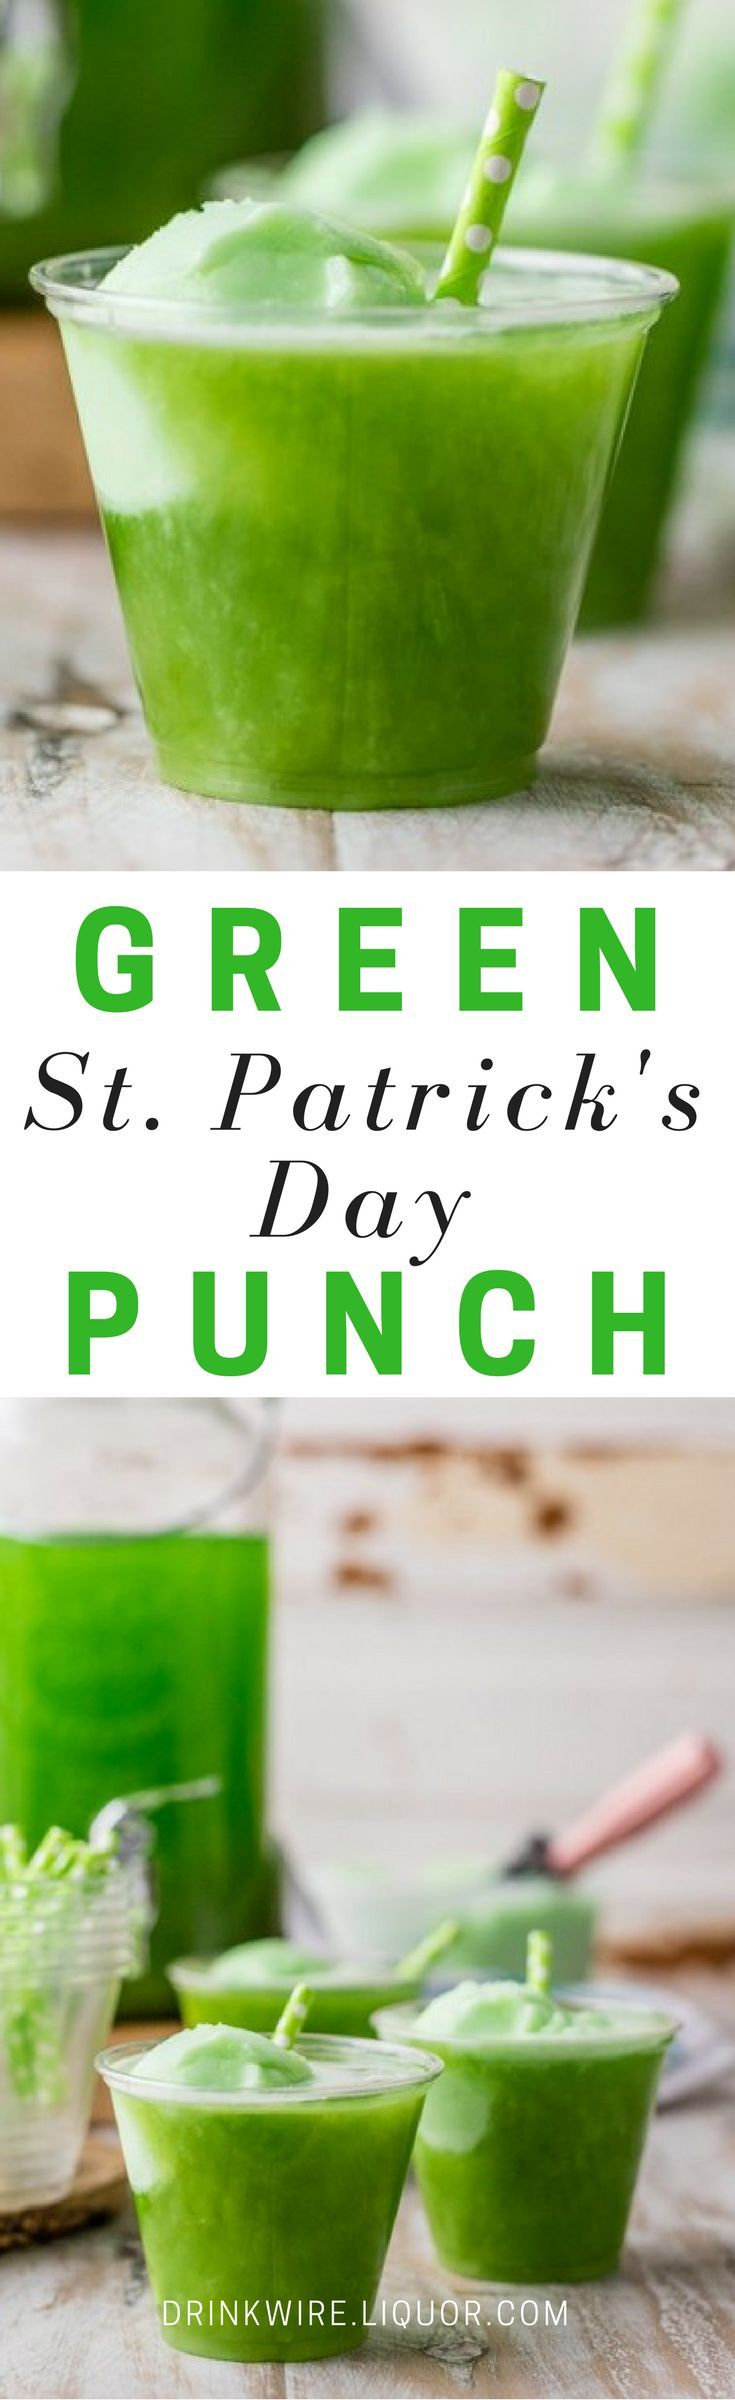 Fruity and citrus flavors come together to make this beautiful green punch, perfect for St. Patrick's Day! Spike it with the alcohol of your choice to make this fun treat extra special!